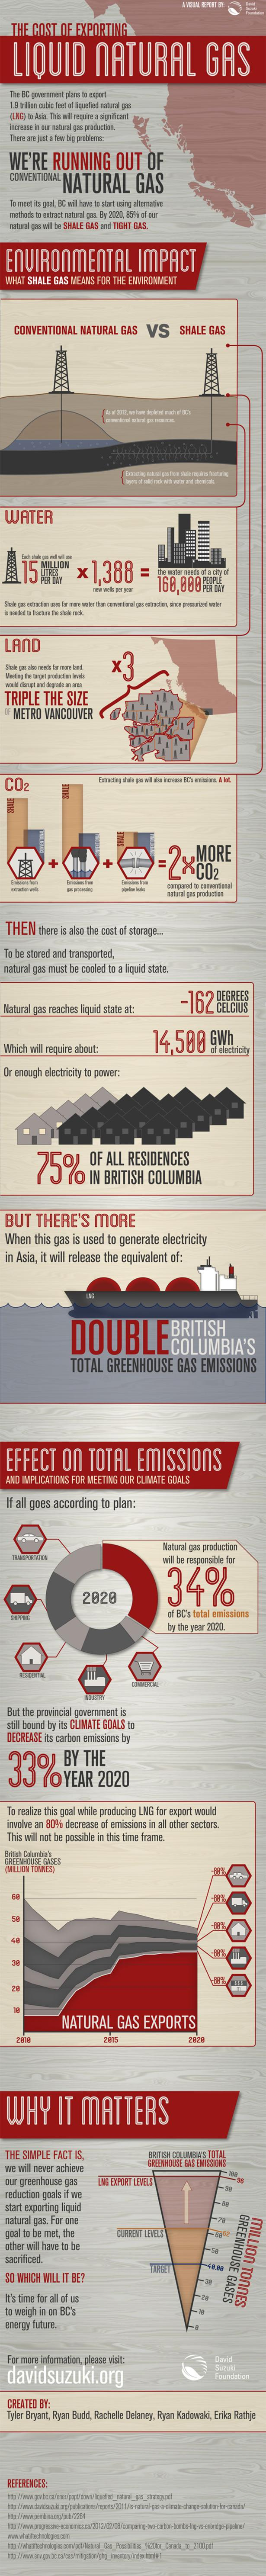 615px version of LNG Infographic, full size